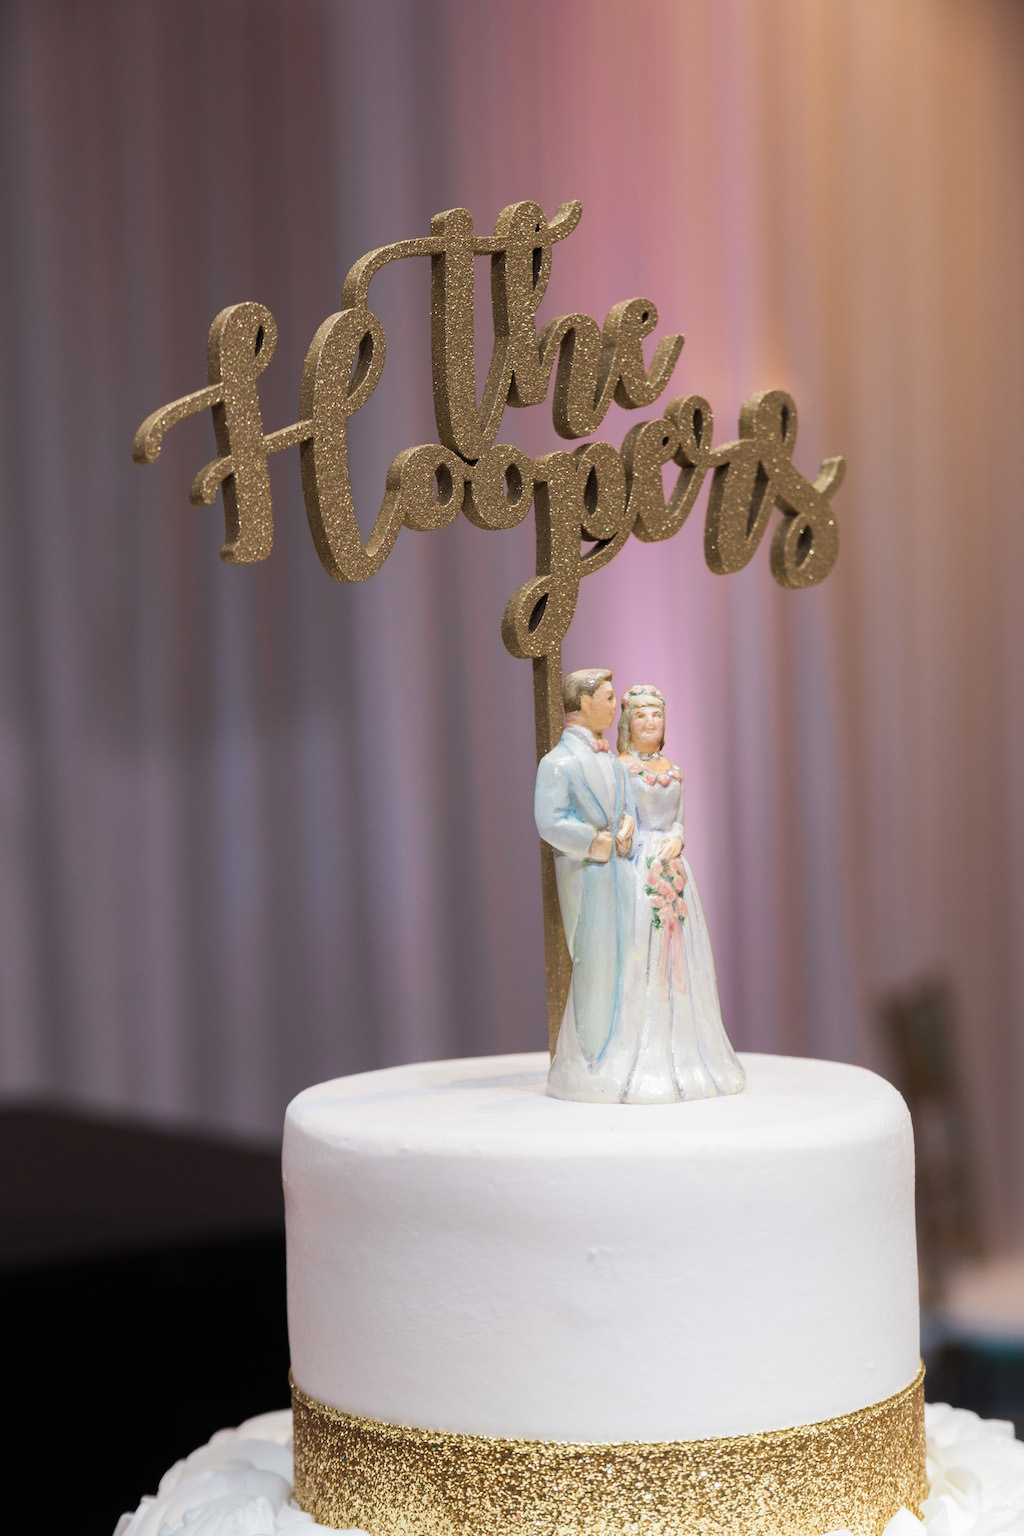 Four Tier Round White with Gold Glitter and Rose Icing Wedding Cake with Custom Figurine Cake Topper and Gold Couple Name